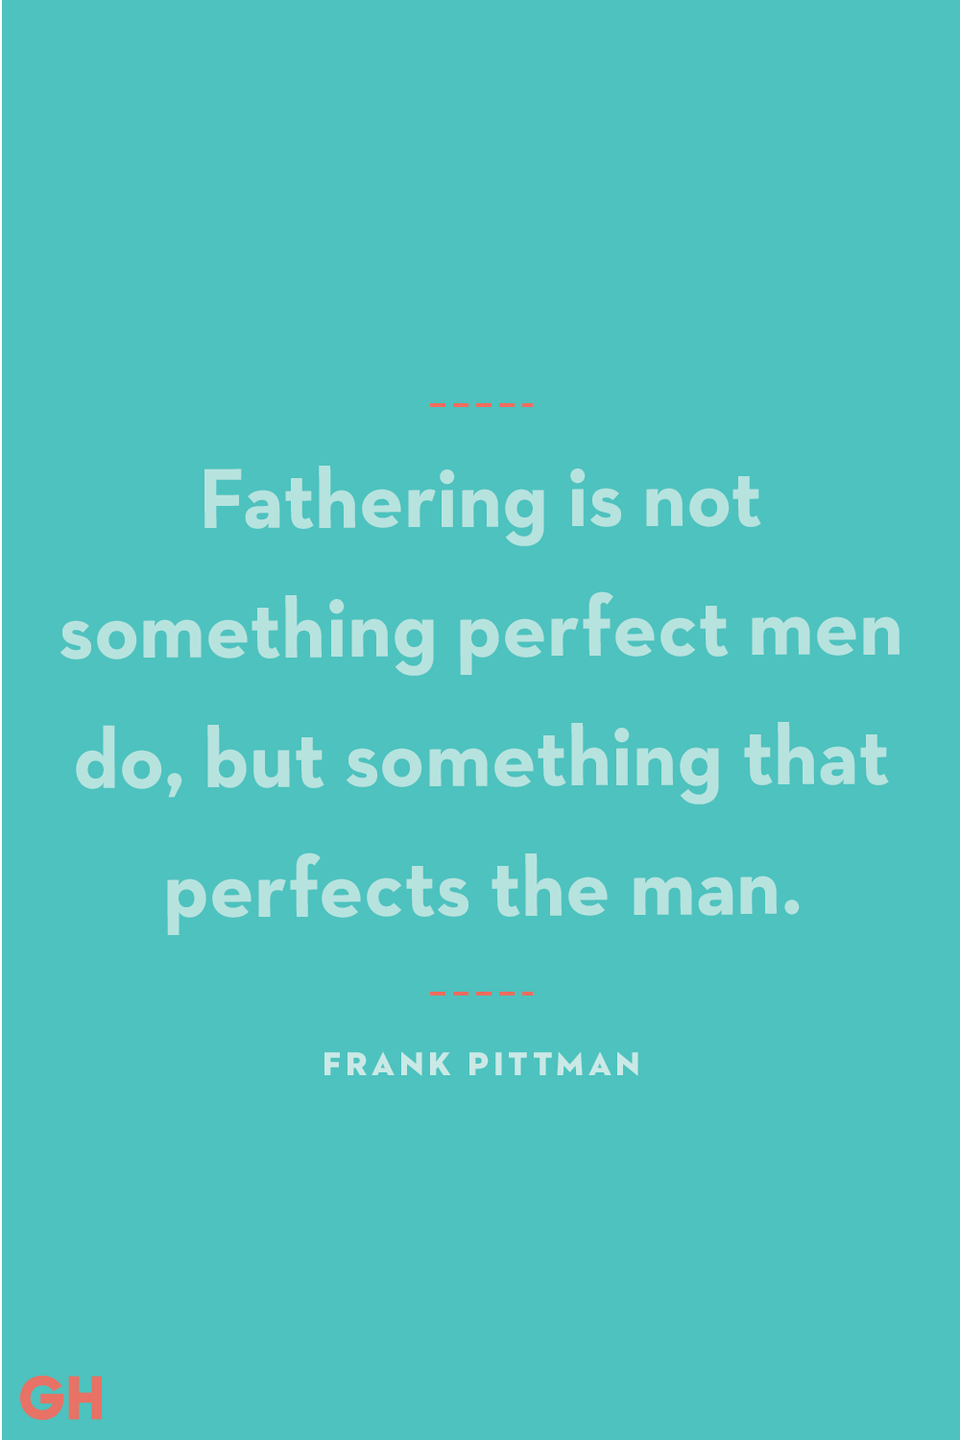 <p>Fathering is not something perfect men do, but something that perfects the man.</p>